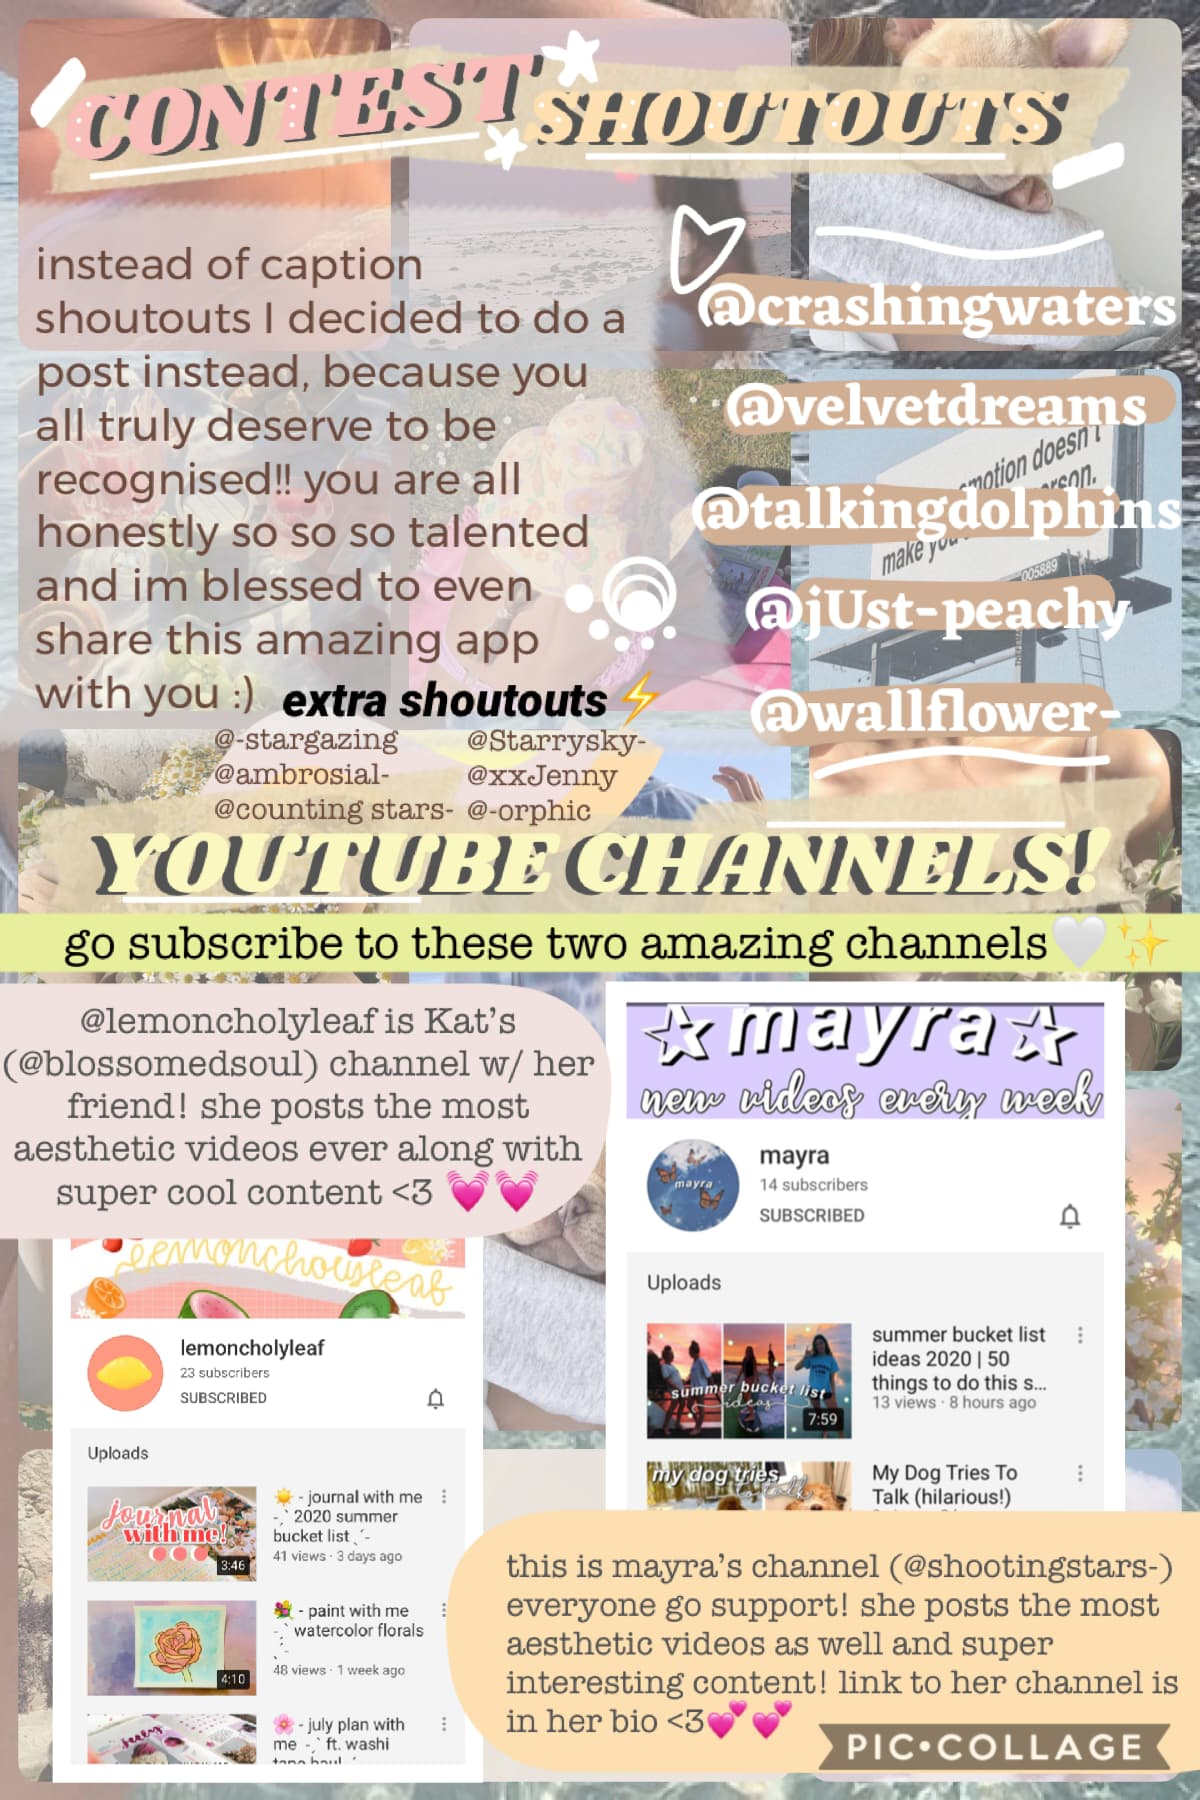 shoutout post⚡️✨im going to be doing shoutout posts every now and then to feature some of you because honestly your talent blows me away🤯🤩alsoo everyone go sub to these YouTube channels!!💗💓